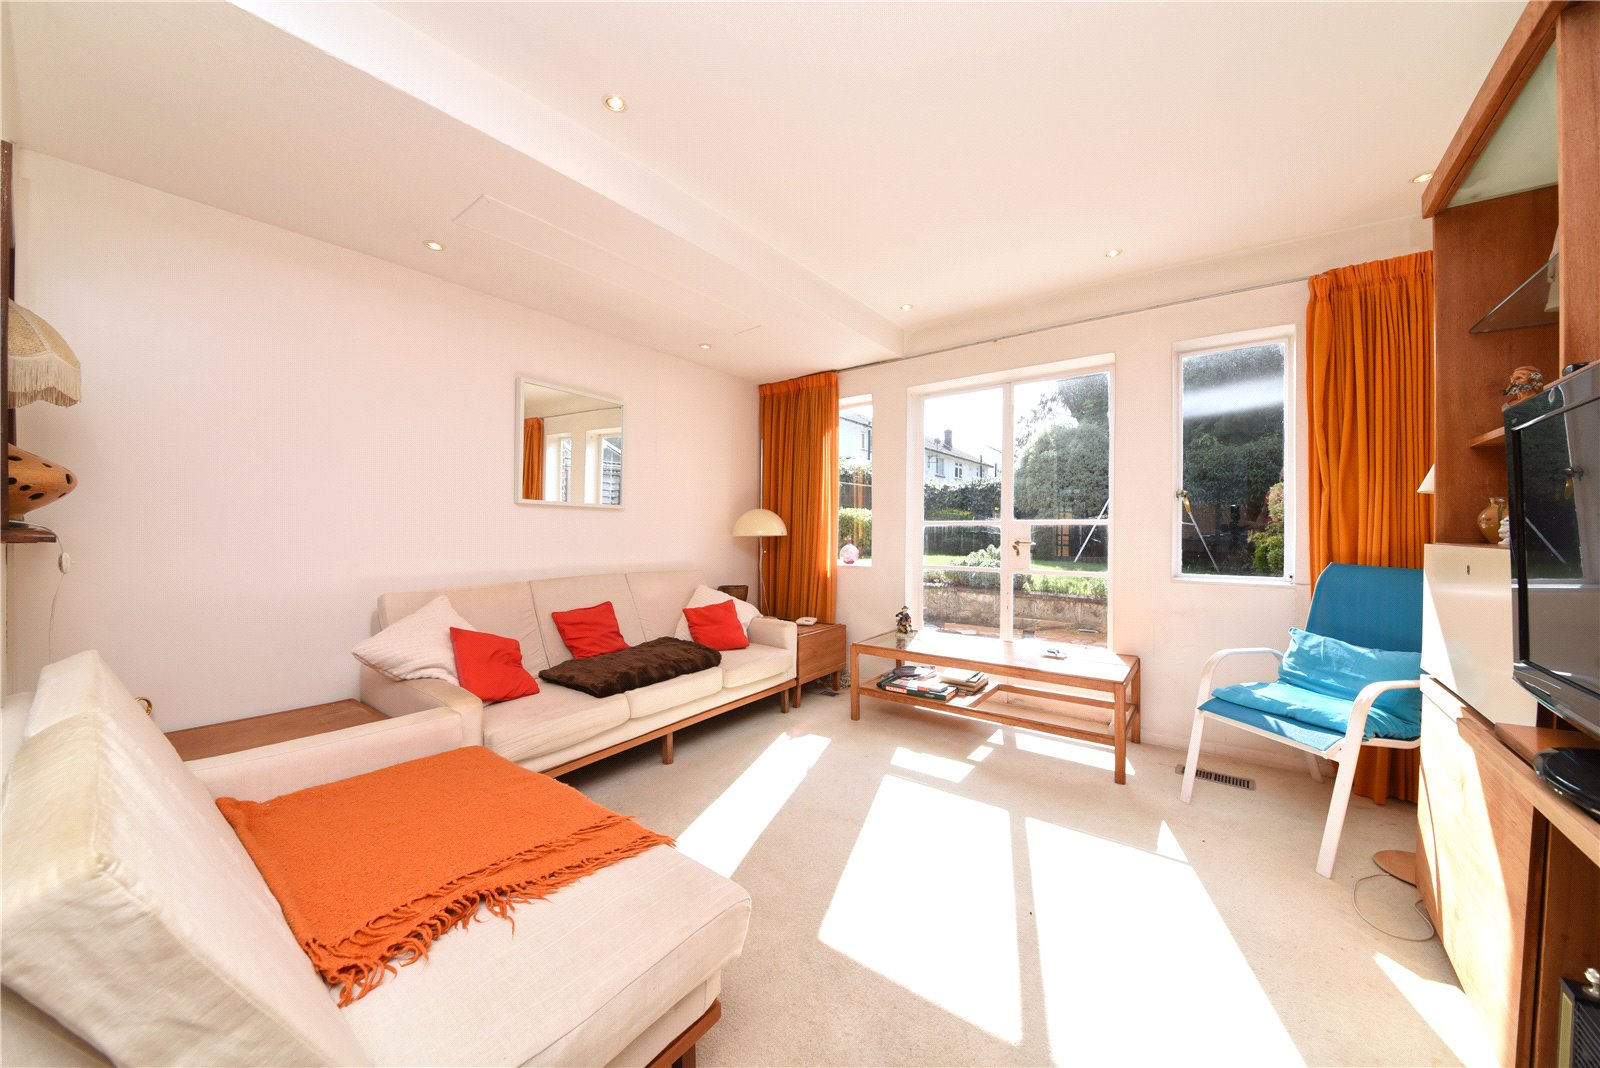 3 bed house for sale in West Finchley, N3 1PB  - Property Image 3